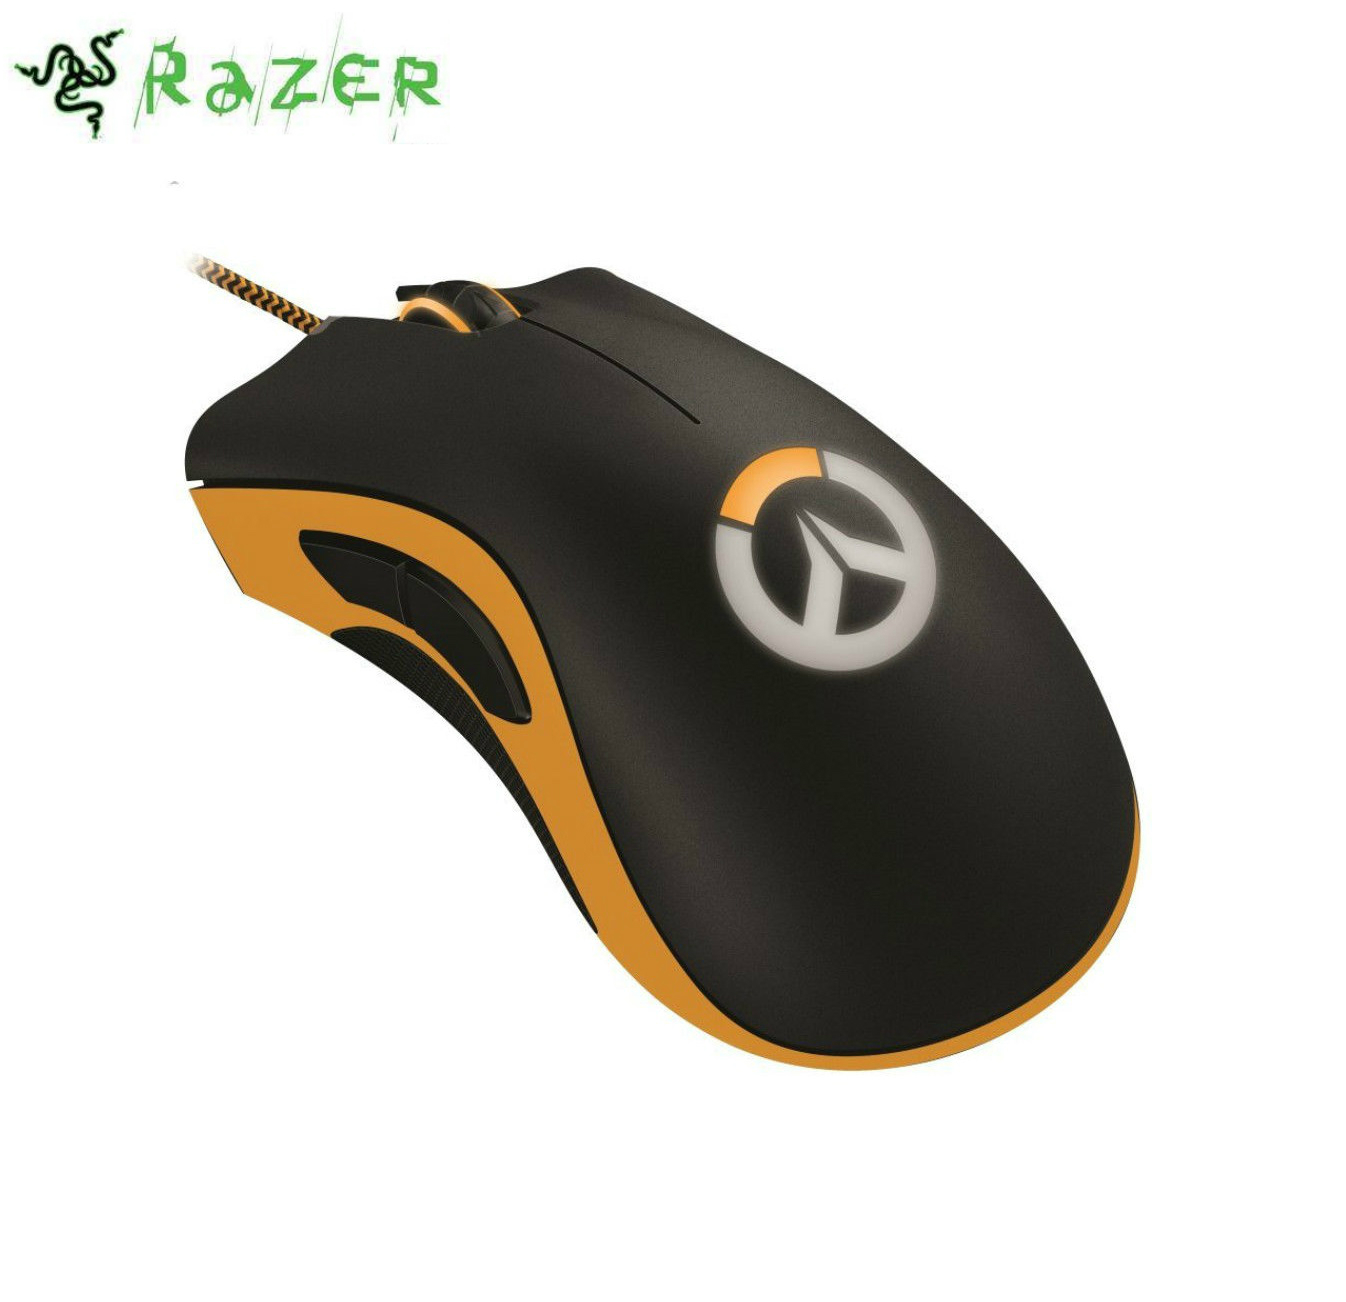 Razer DeathAdder Chroma Overwatch Edition Gaming Mouse 10000 DPI RGB Ergonomic PC Gamer USB Wired Retail Package overwatch origins edition [xbox one]